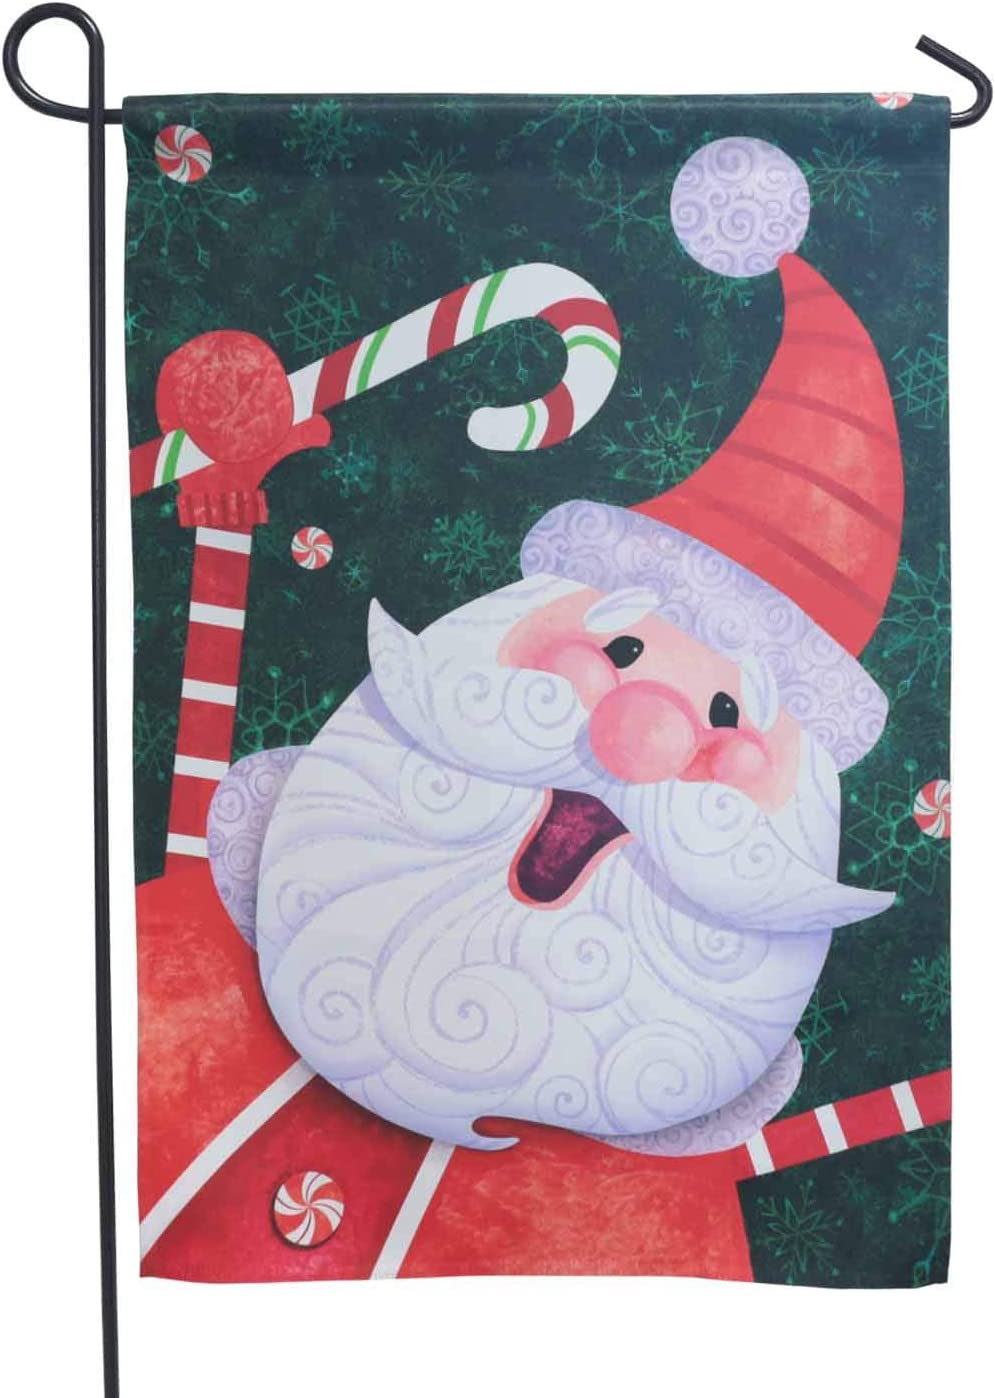 LAYOER 12 x 18 inch Garden Flag Santa Claus Candy Welcome Merry Christmas Home Decorative Double Sided (13 x 18 Inch)